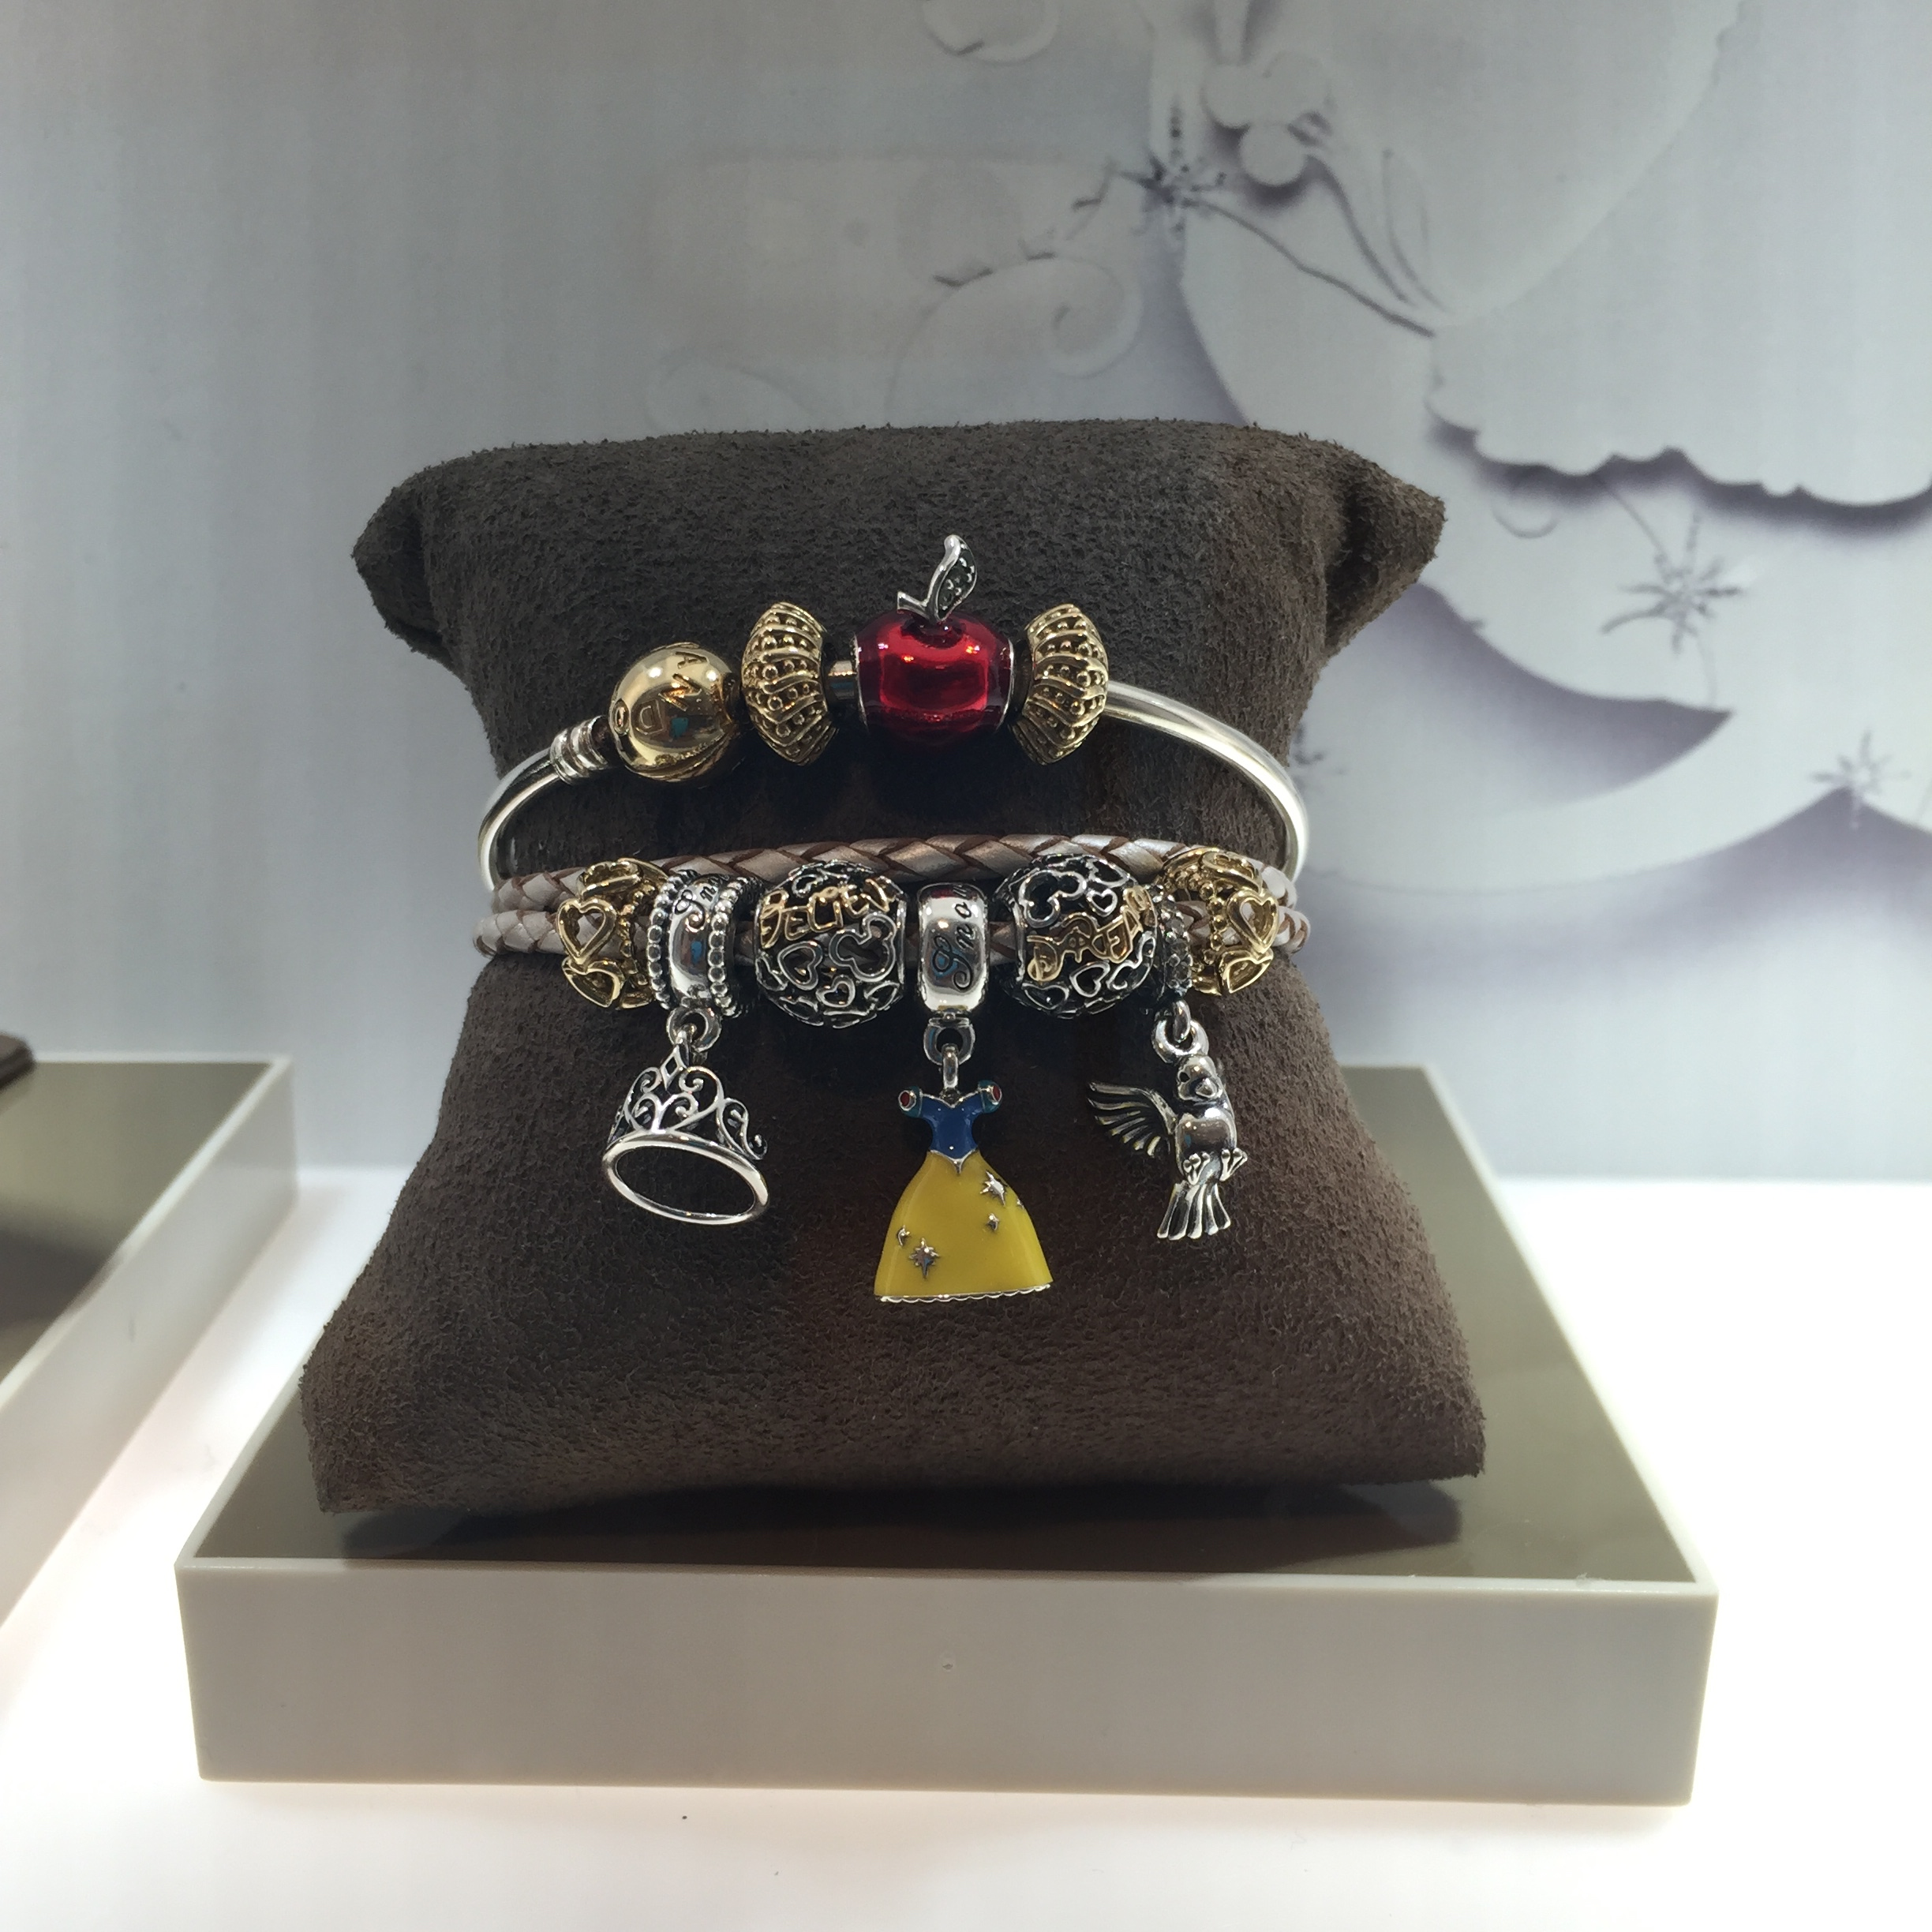 72c1956f0 Beautiful charm bracelet at a Pandora store featuring Snow White's dress